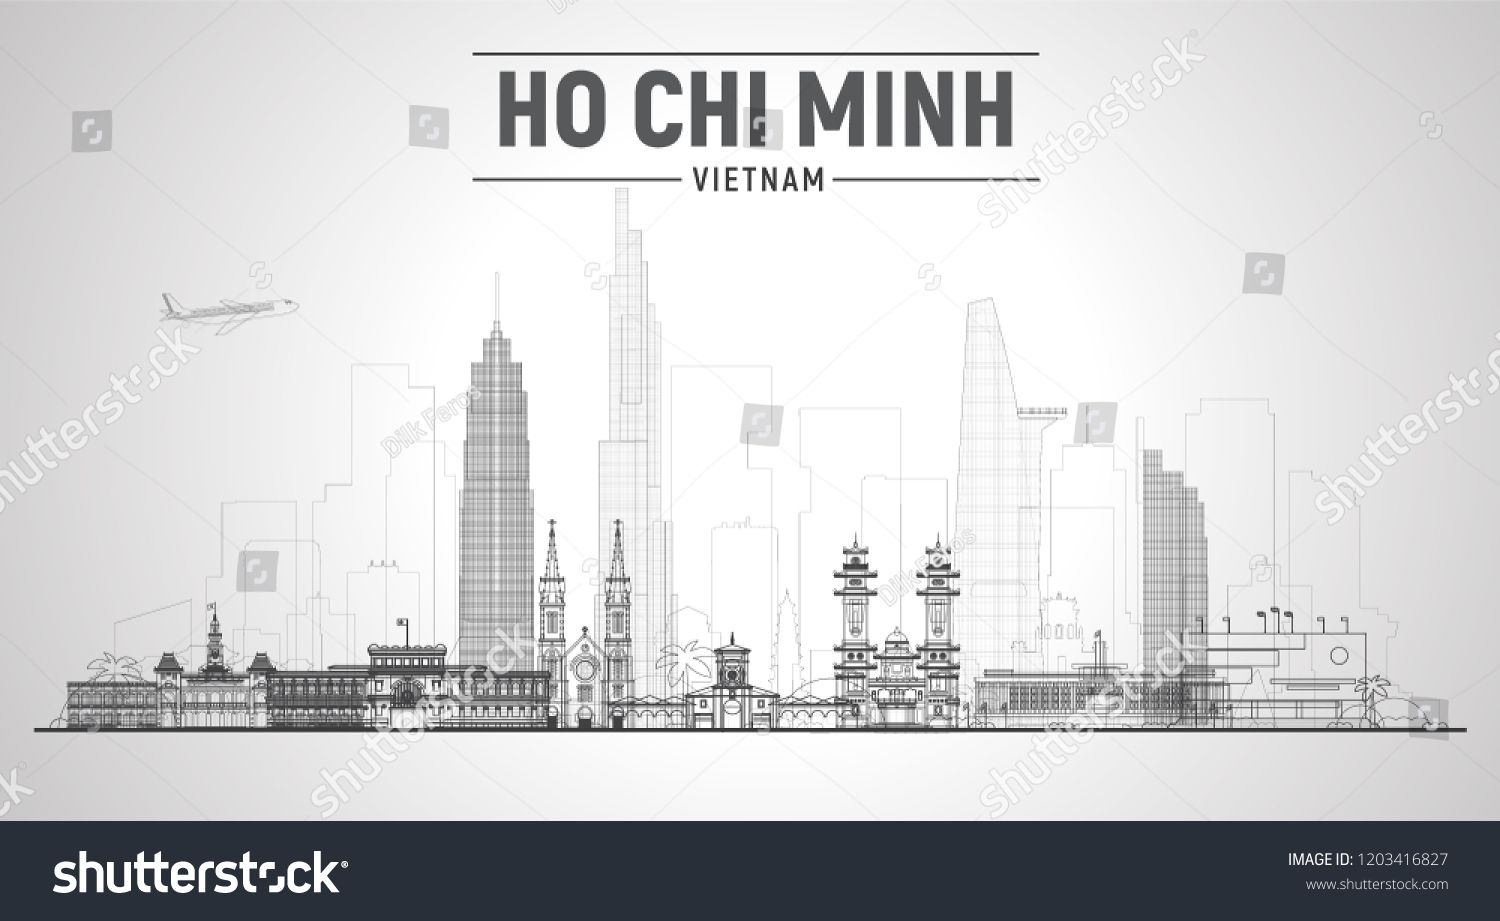 Ho Chi Minh City Vietnam Line Skyline With Panorama In White Background Vector Illustration Business Travel And Tourism Travel And Tourism Tourism Panorama